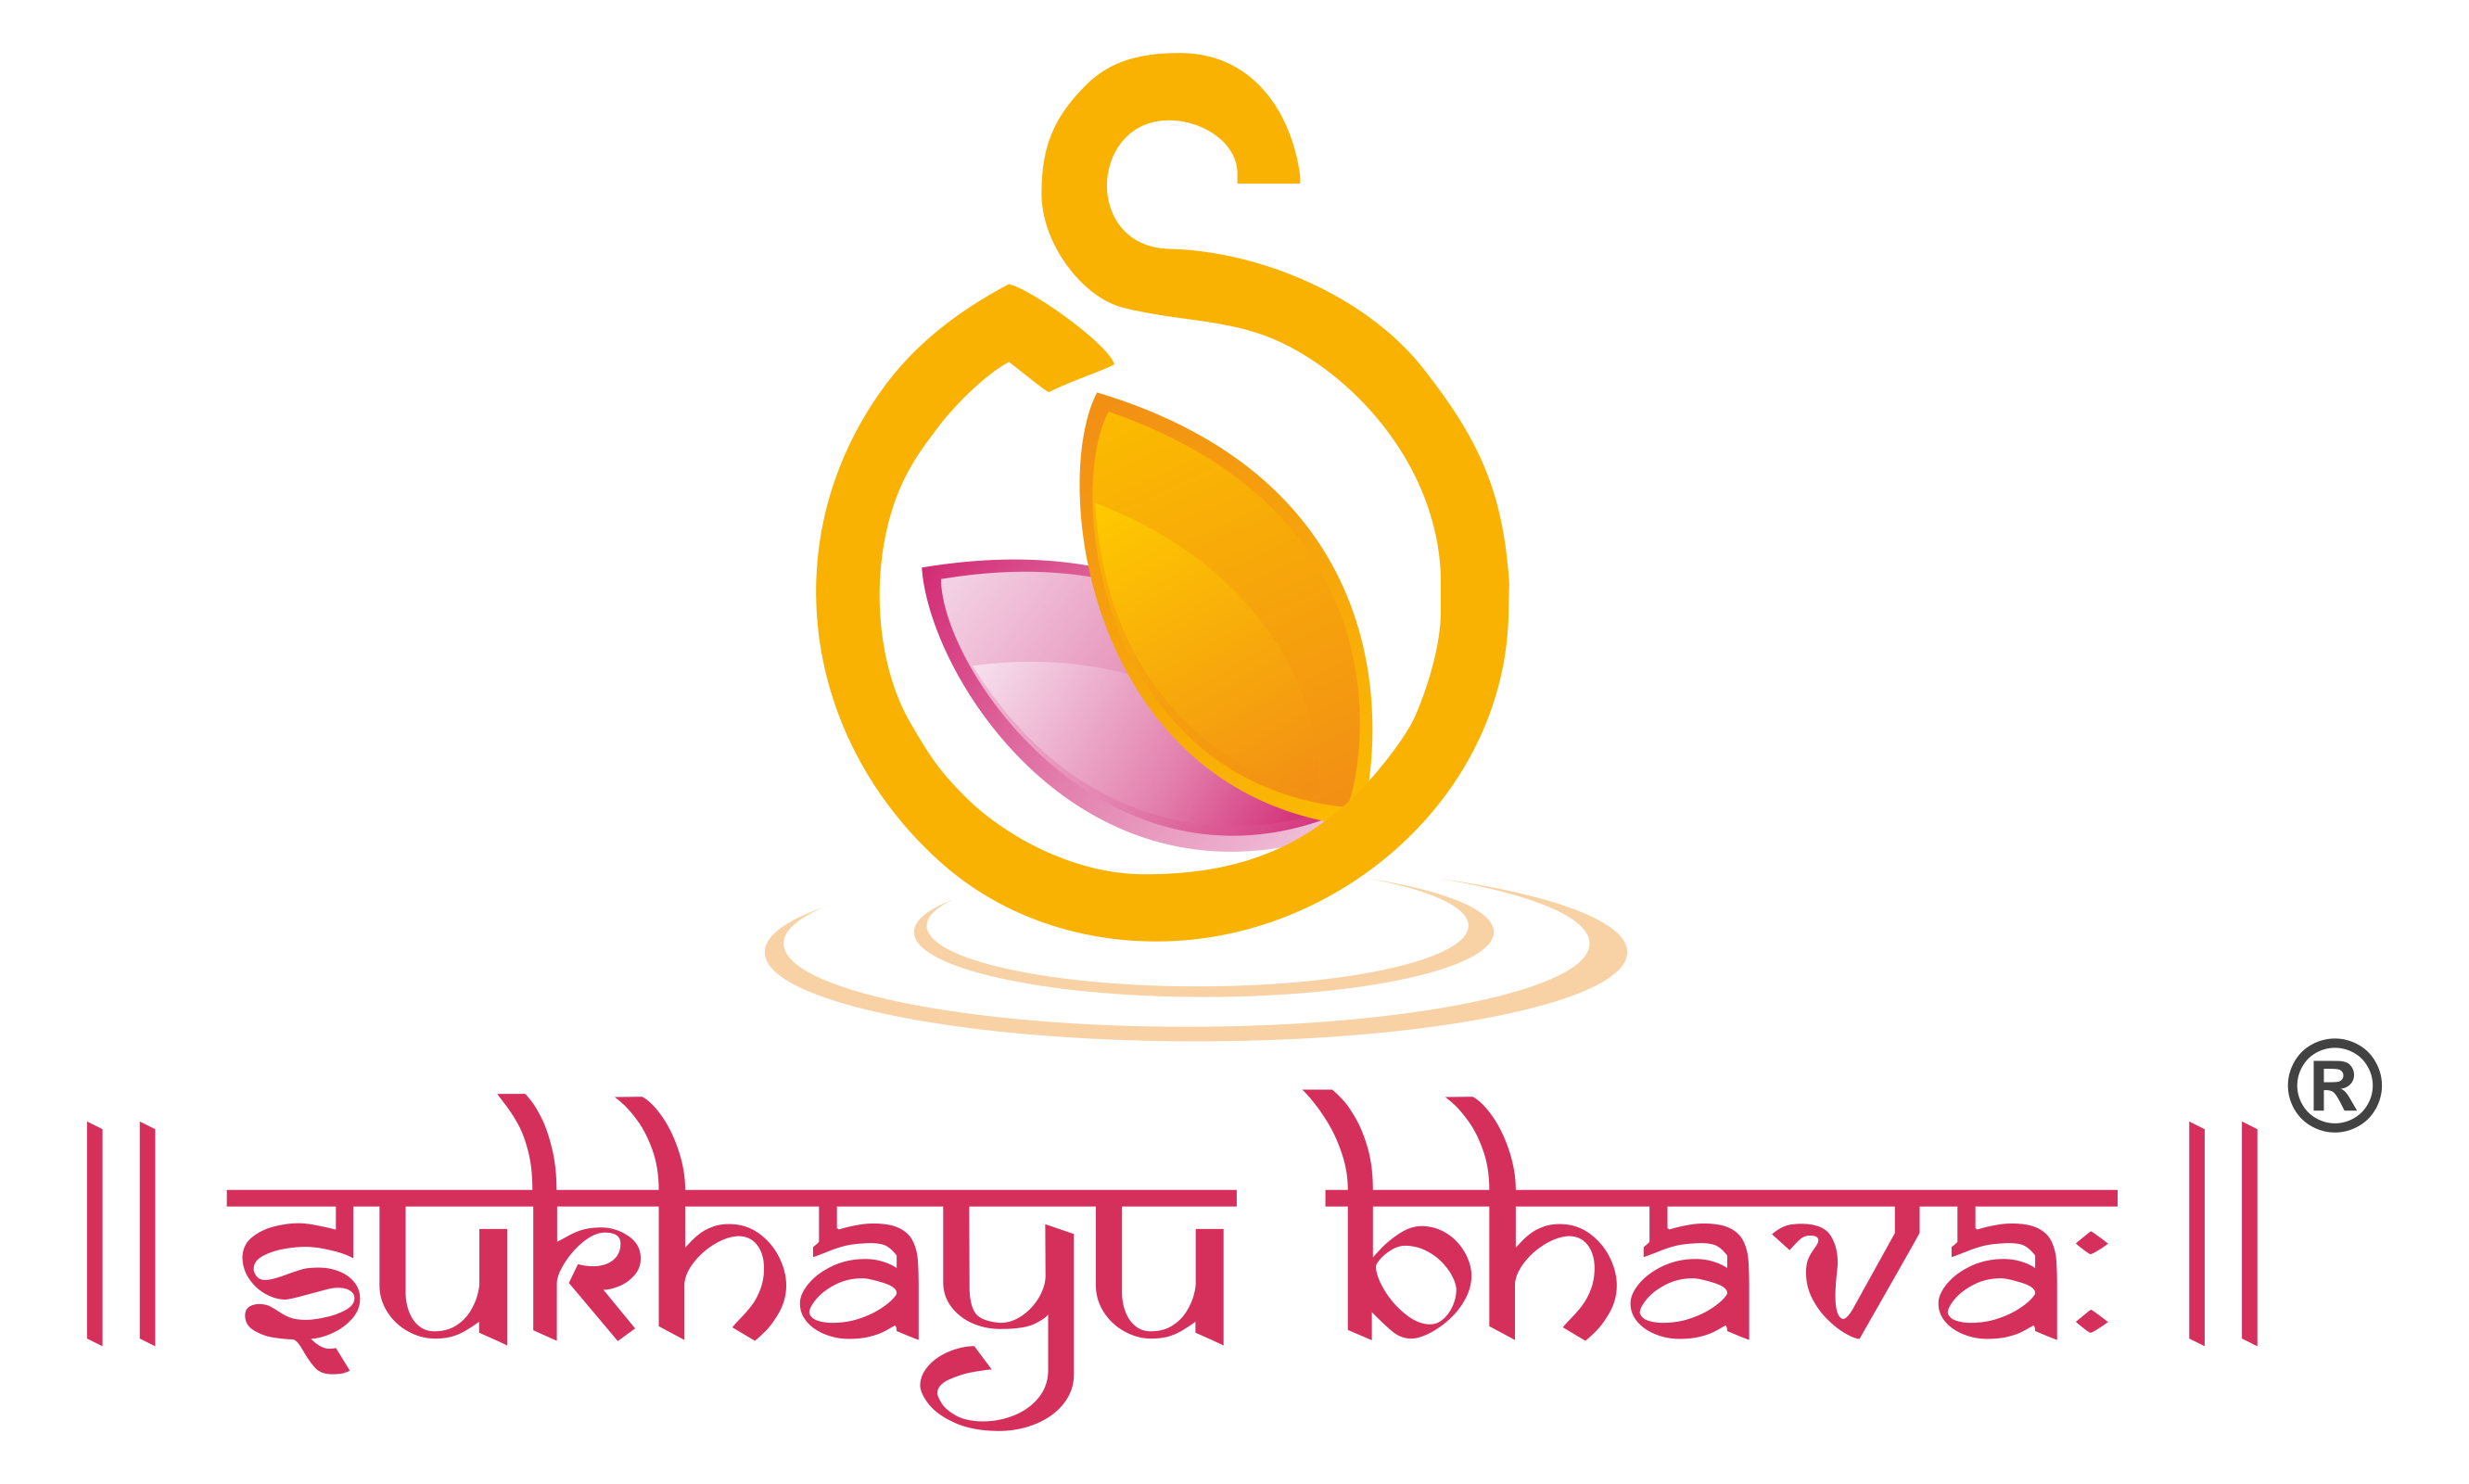 Sukhayubhava - Blessings For Life